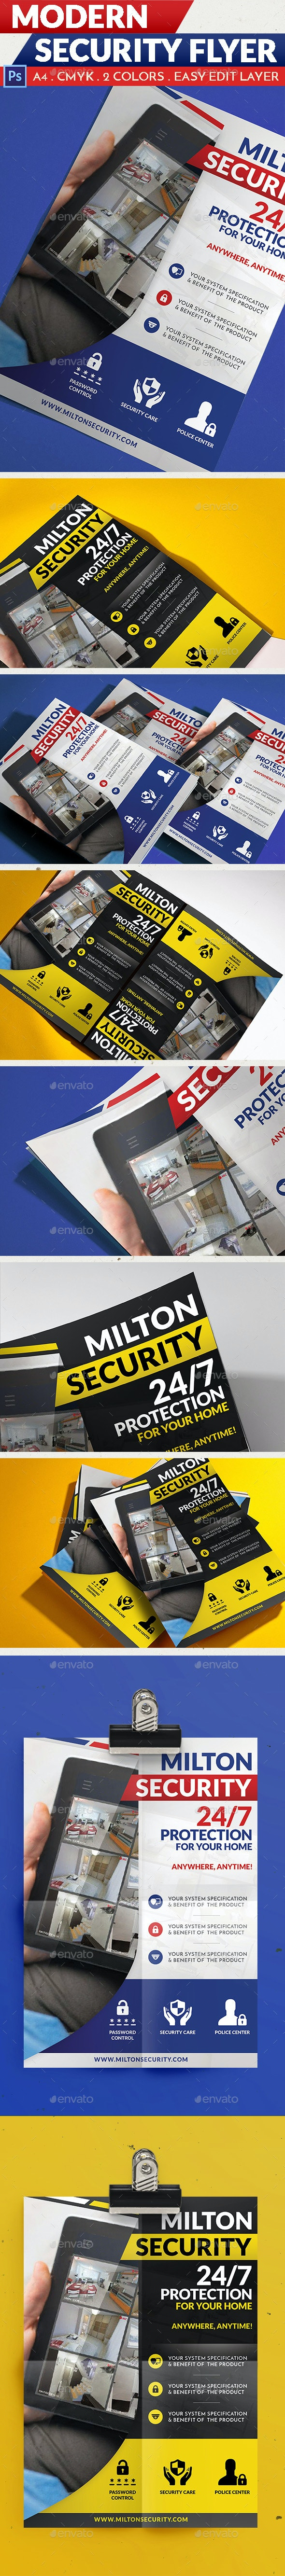 Modern Security Flyer - Corporate Flyers